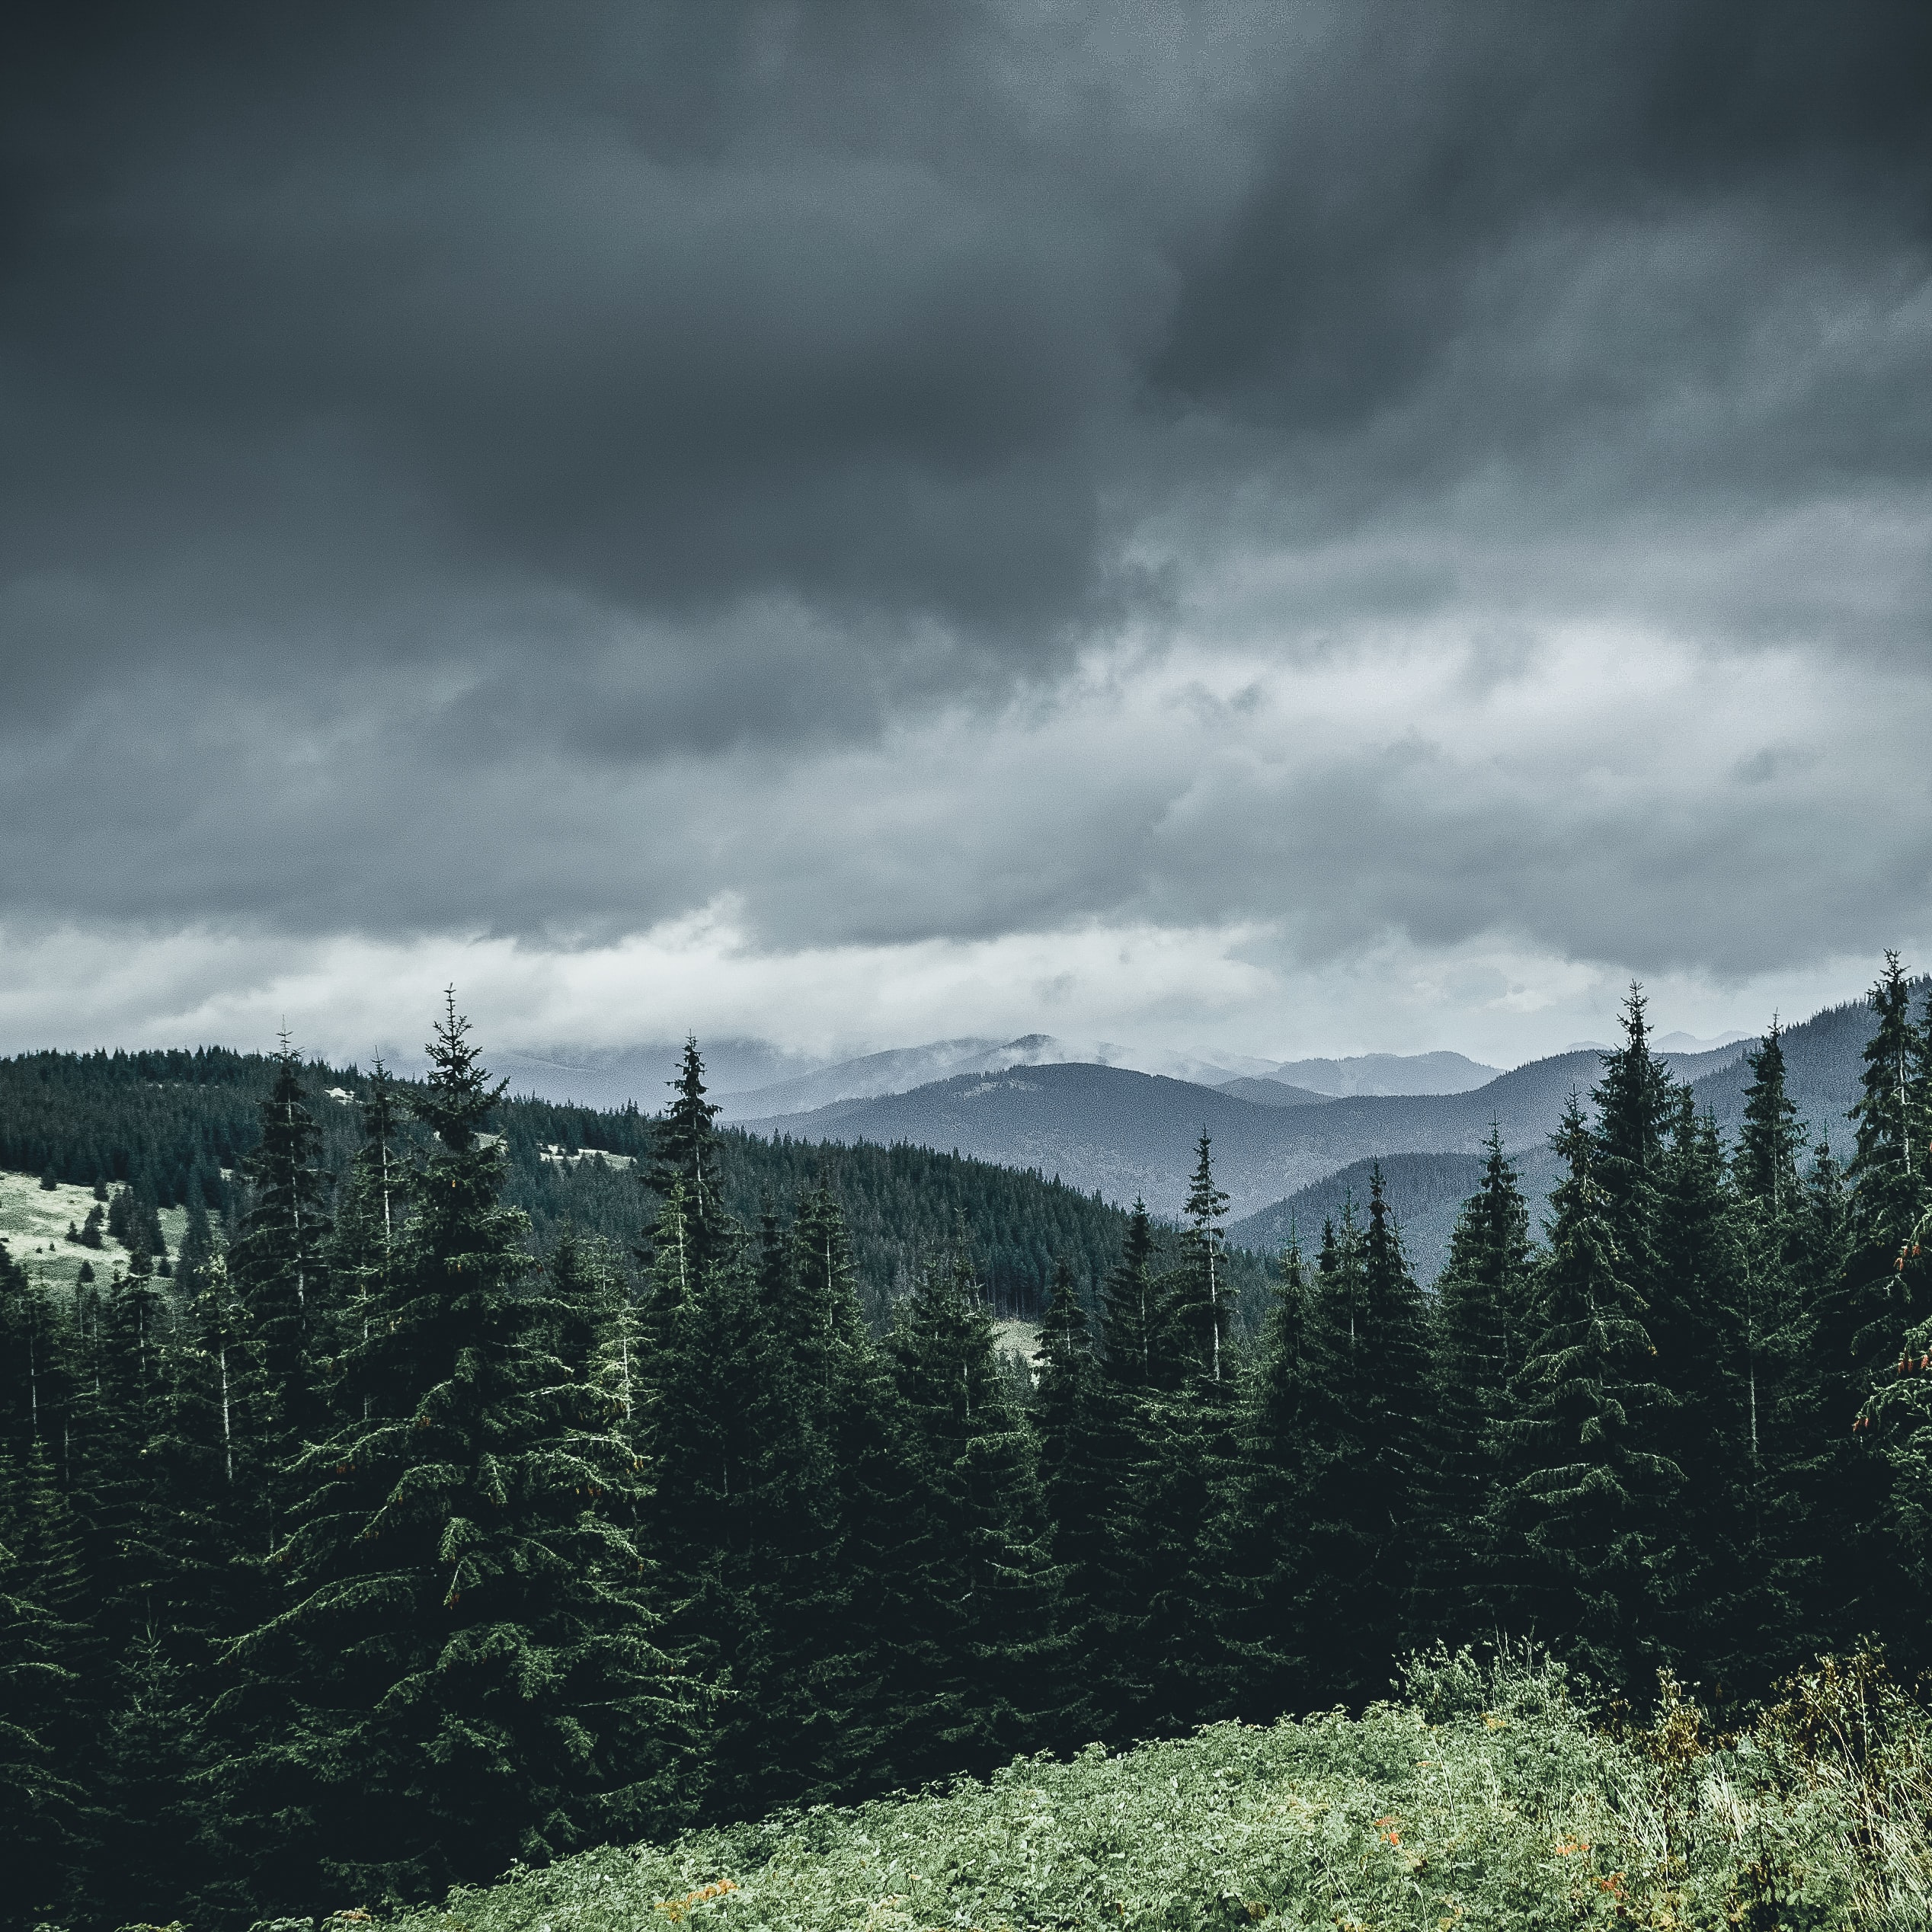 pine trees under cloudy sky